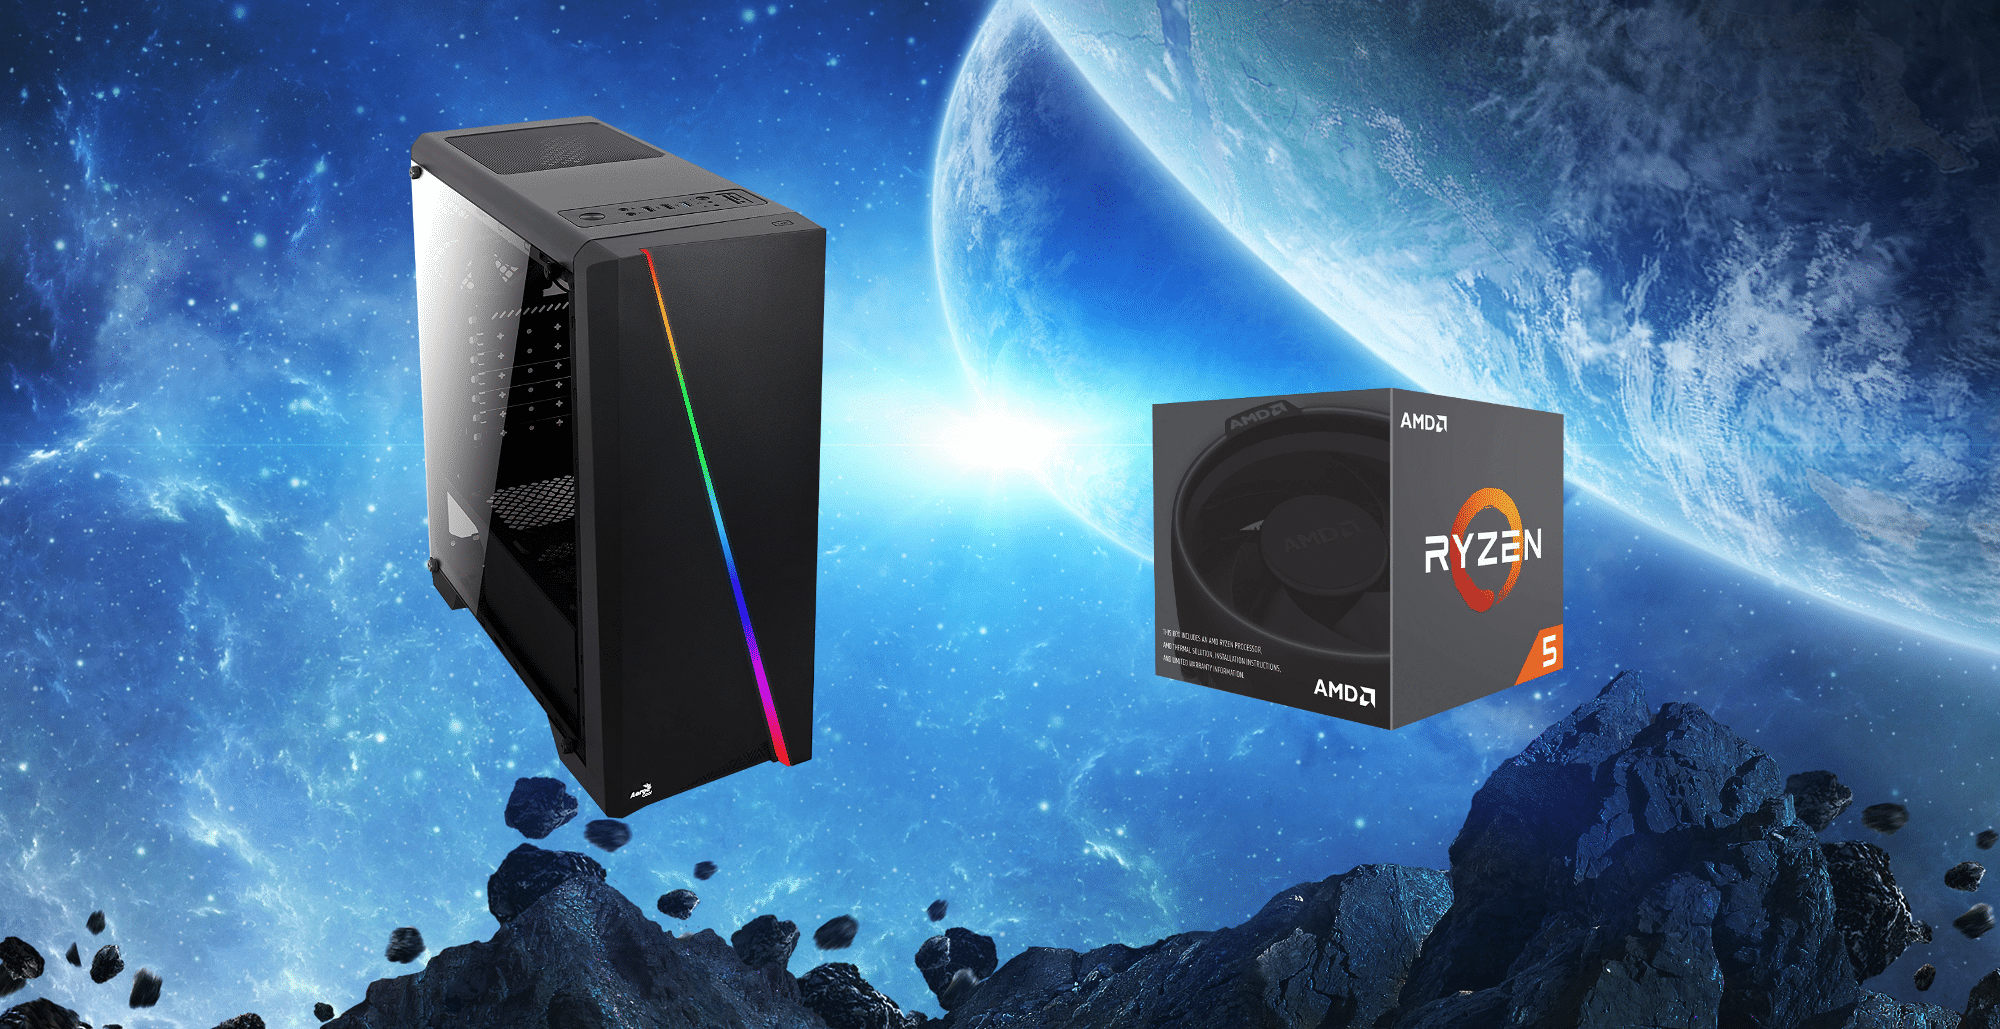 $700 Budget Streaming PC Build for Live Streaming on Twitch